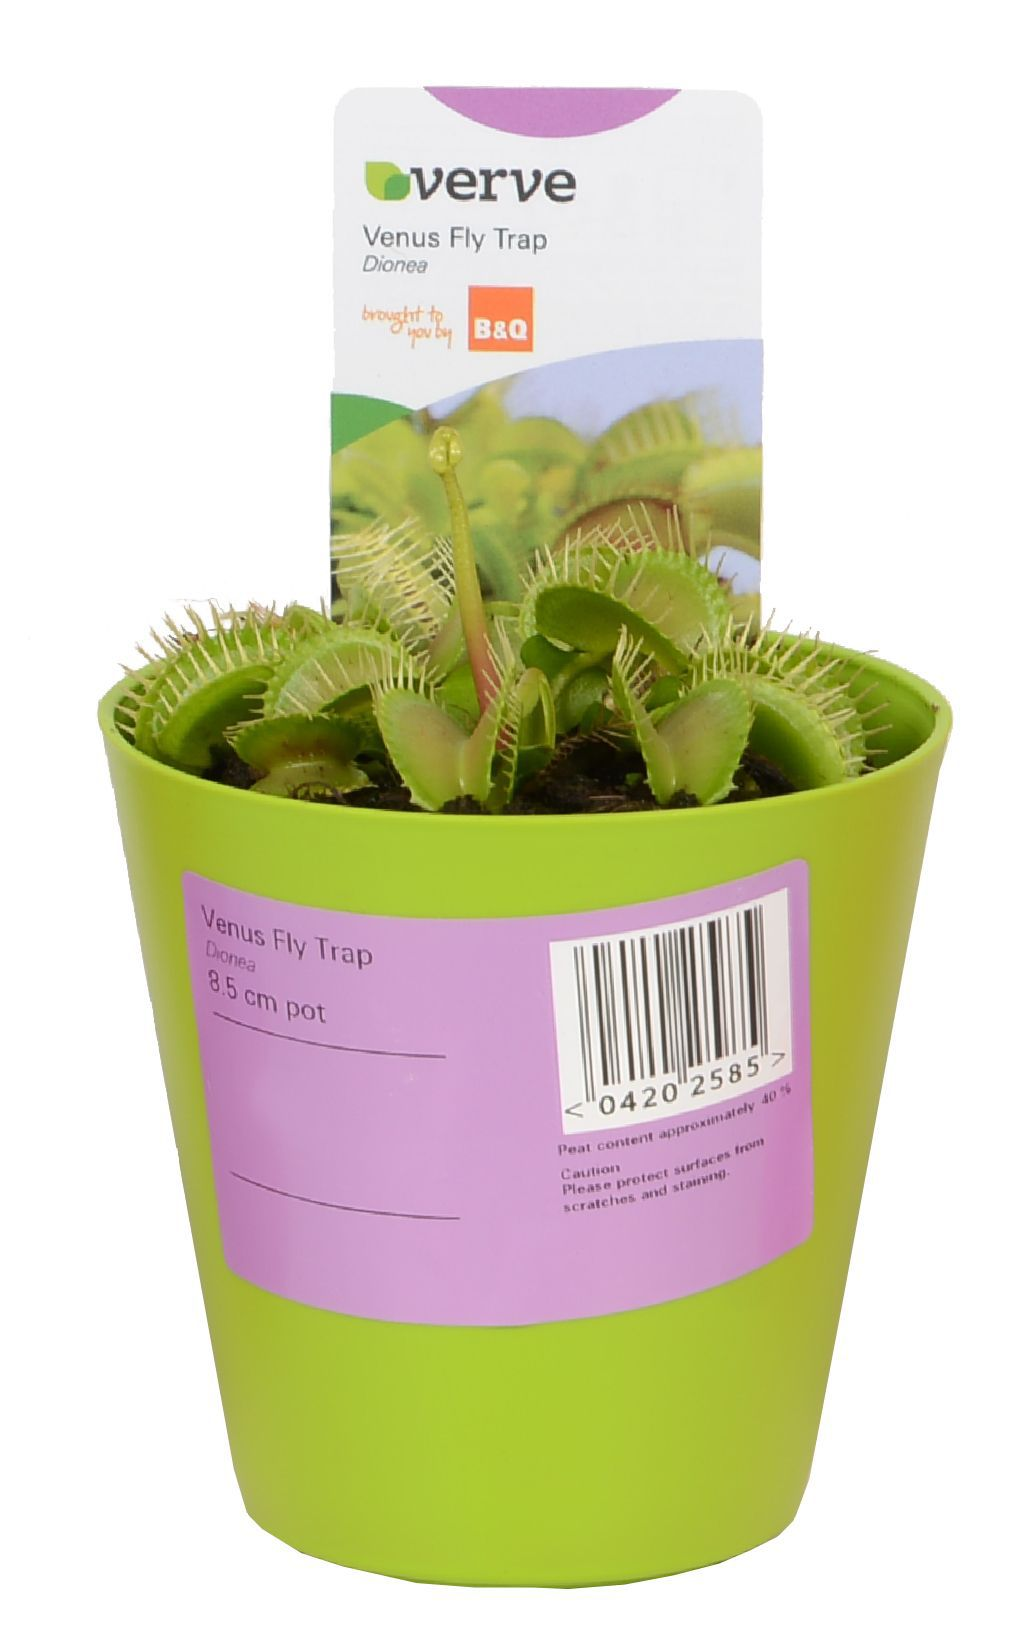 outdoor kitchens for sale lowes black kitchen sink verve venus fly trap in plastic pot | departments diy at b&q